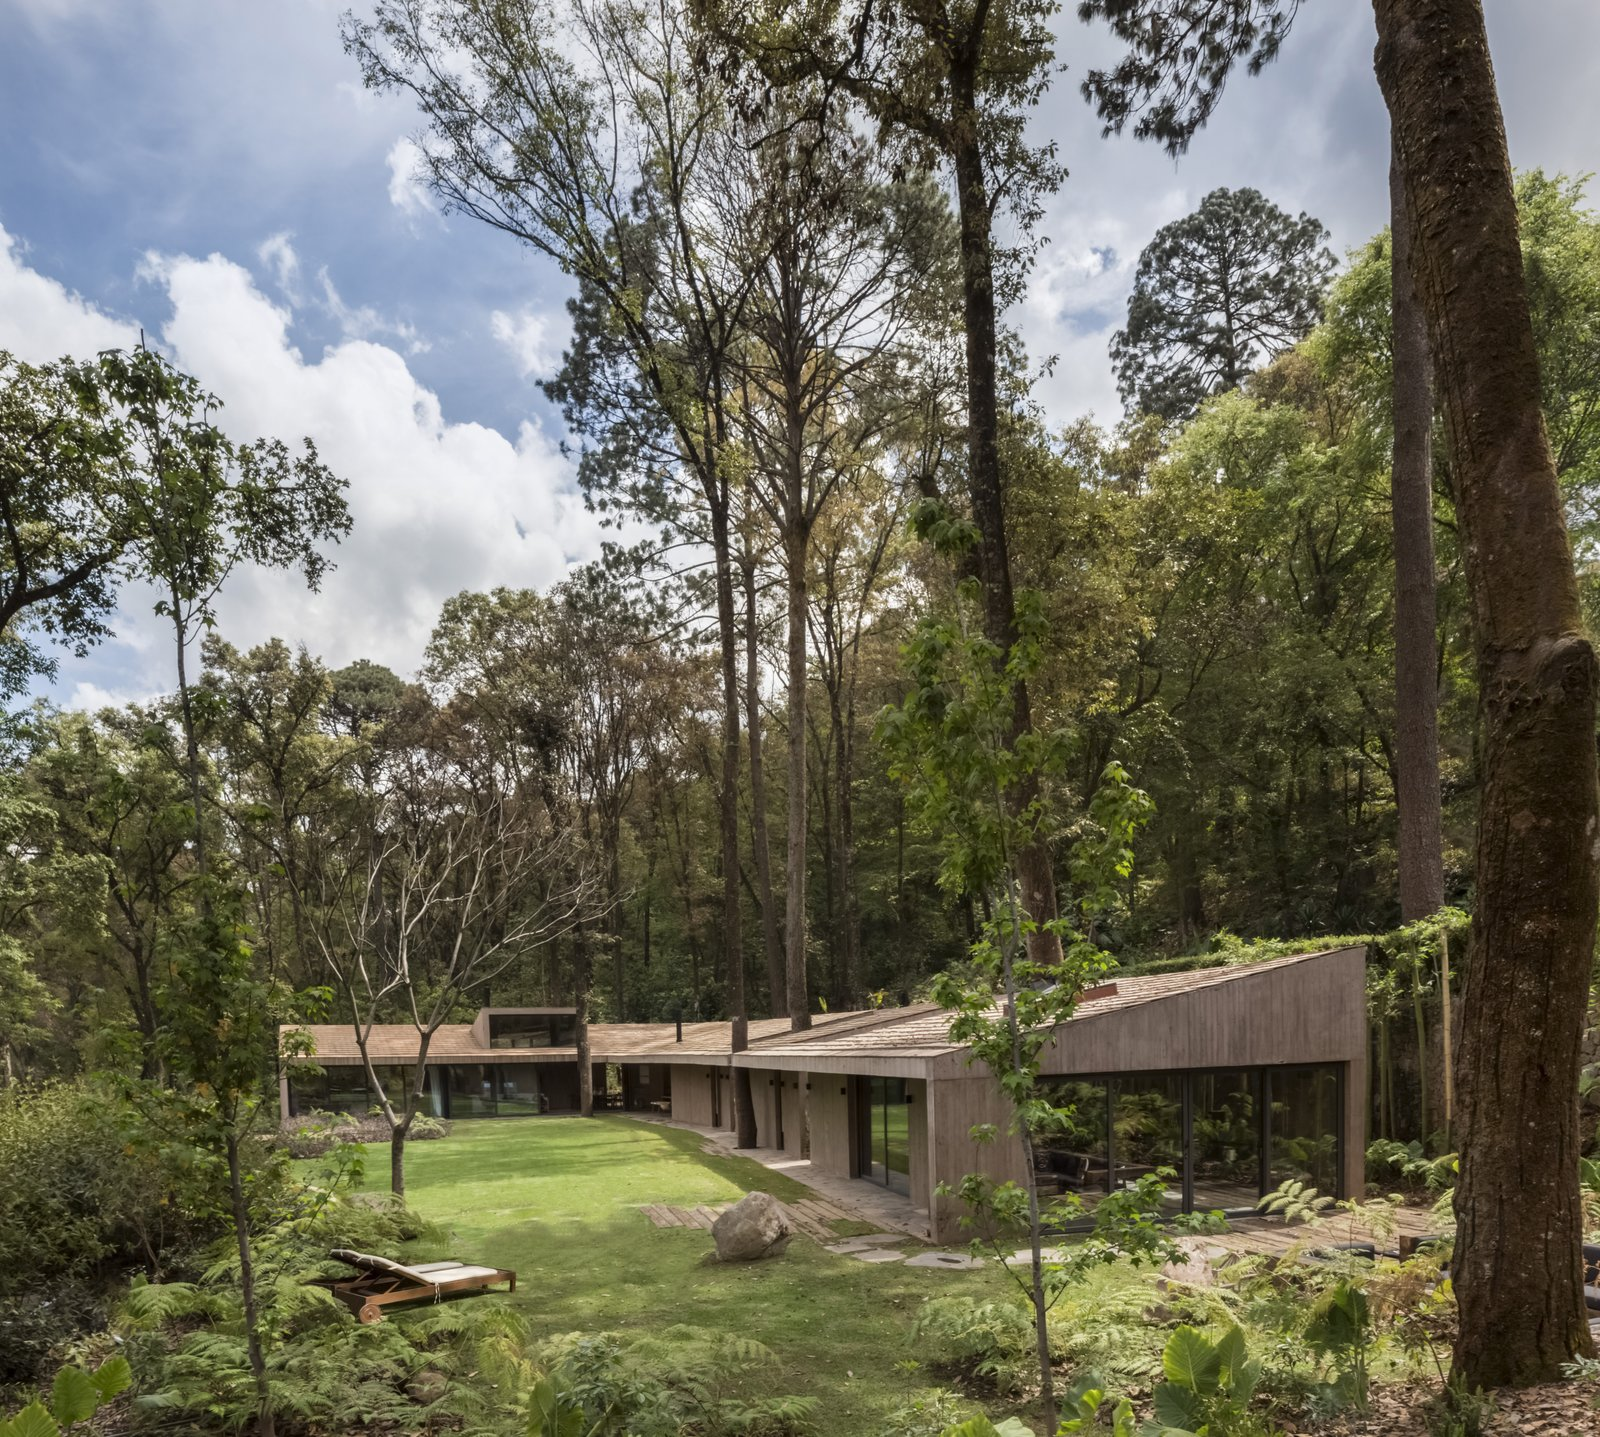 The L-shaped layout embraces a patch of a private garden where the owners can lounge in the sunshine, picnic on the property, and take in views of the nearby lake.